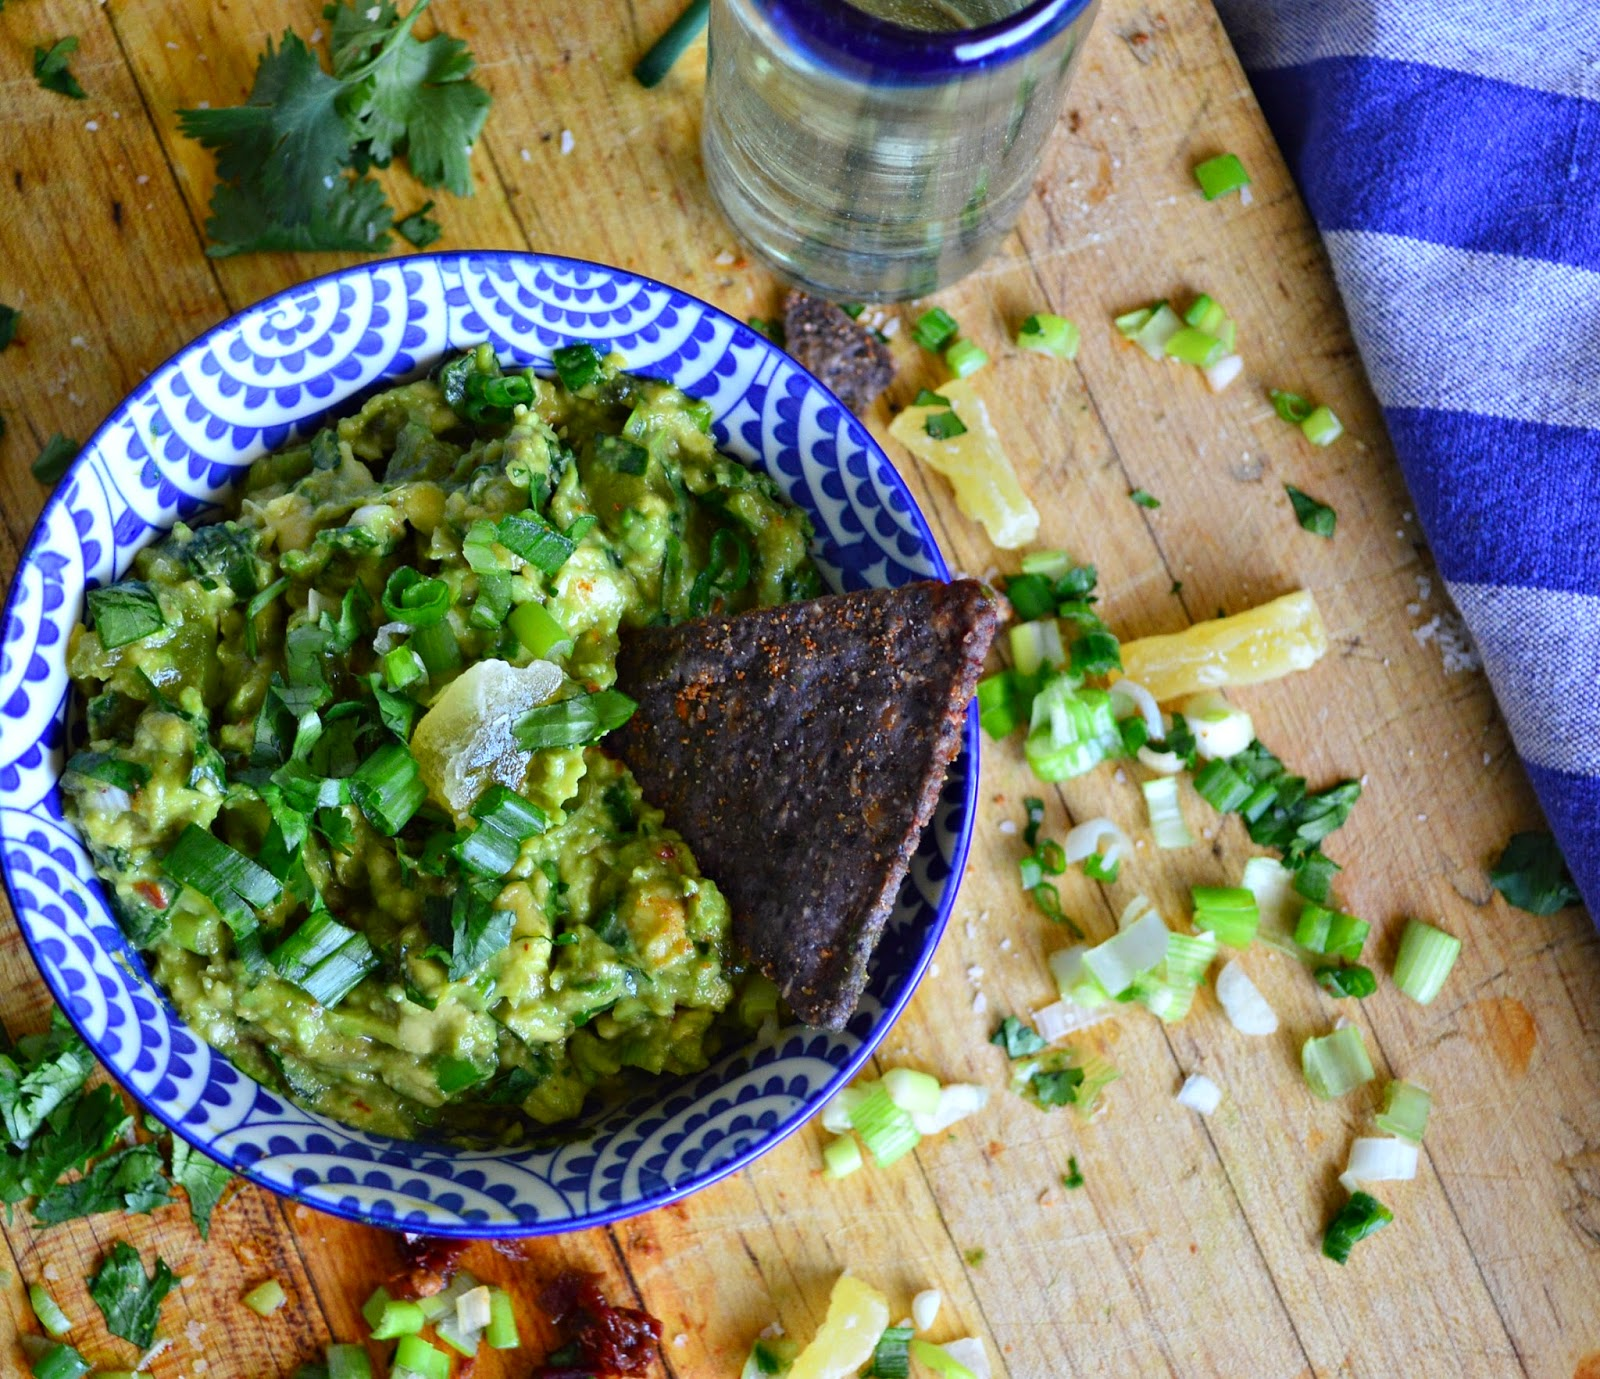 A great guacamole with dried pineapple, chipotle and tequila. Jazz up your avocados. You will love this new twist! #guacamole #dips #appetizers #MexicanFood www.thisishowicook.com